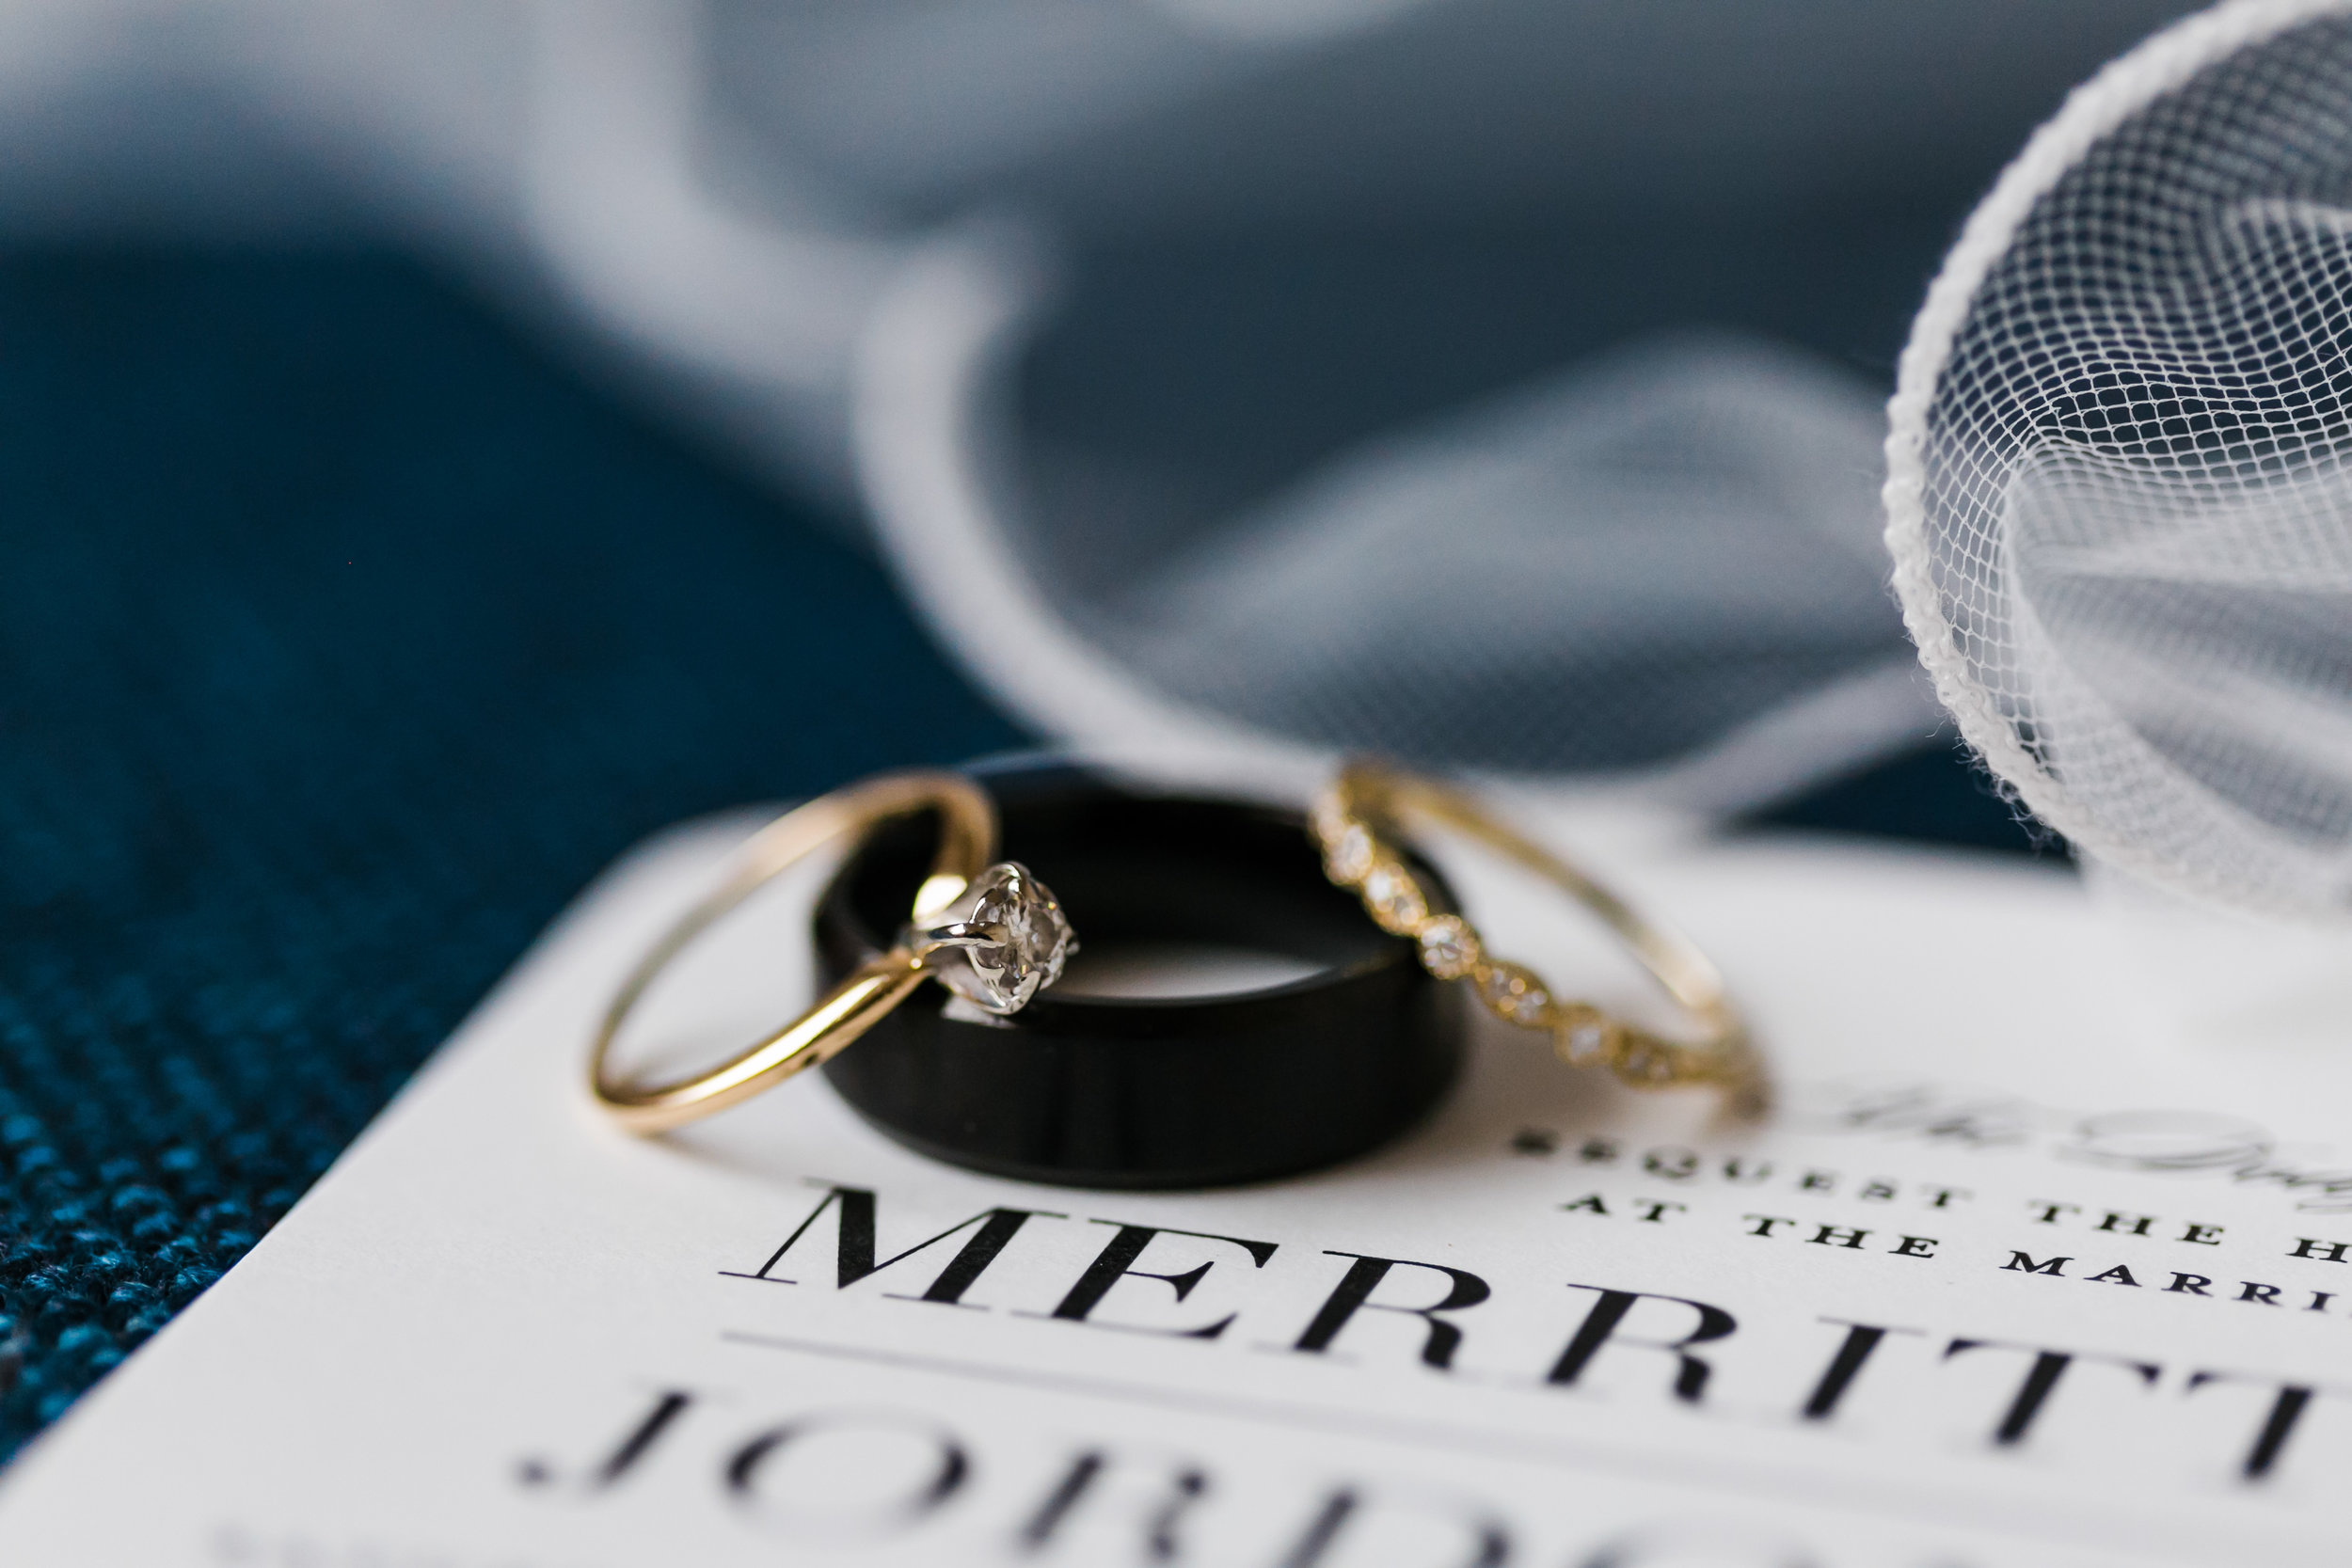 mixed metal wedding rings laying on invite